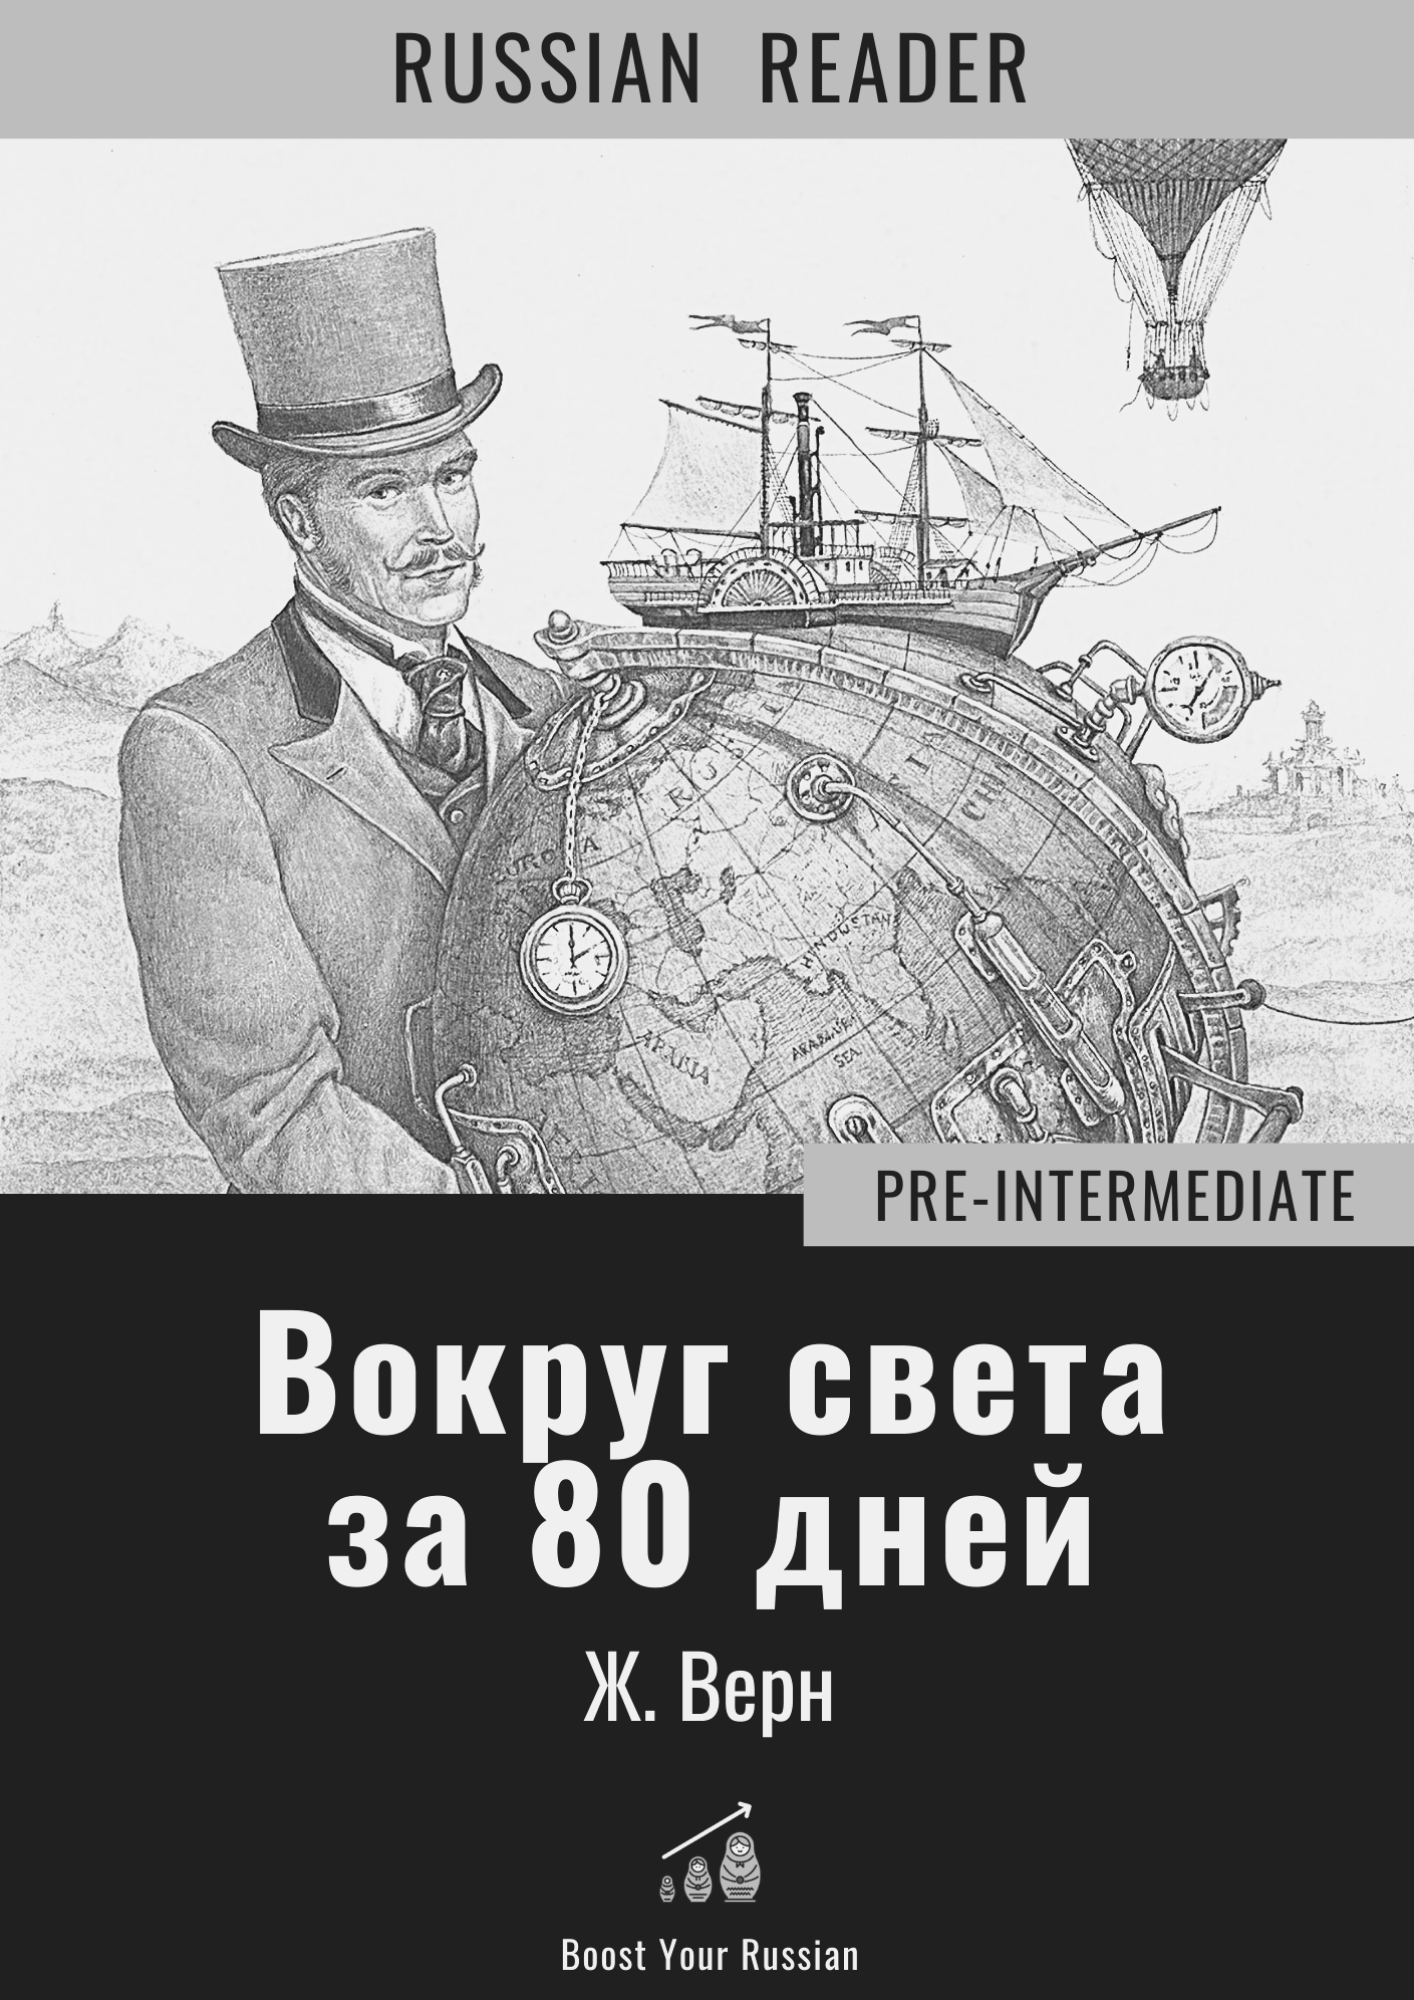 Russian Reader: Pre-Intermediate. Around the World in Eighty Days by J. Verne, annotated